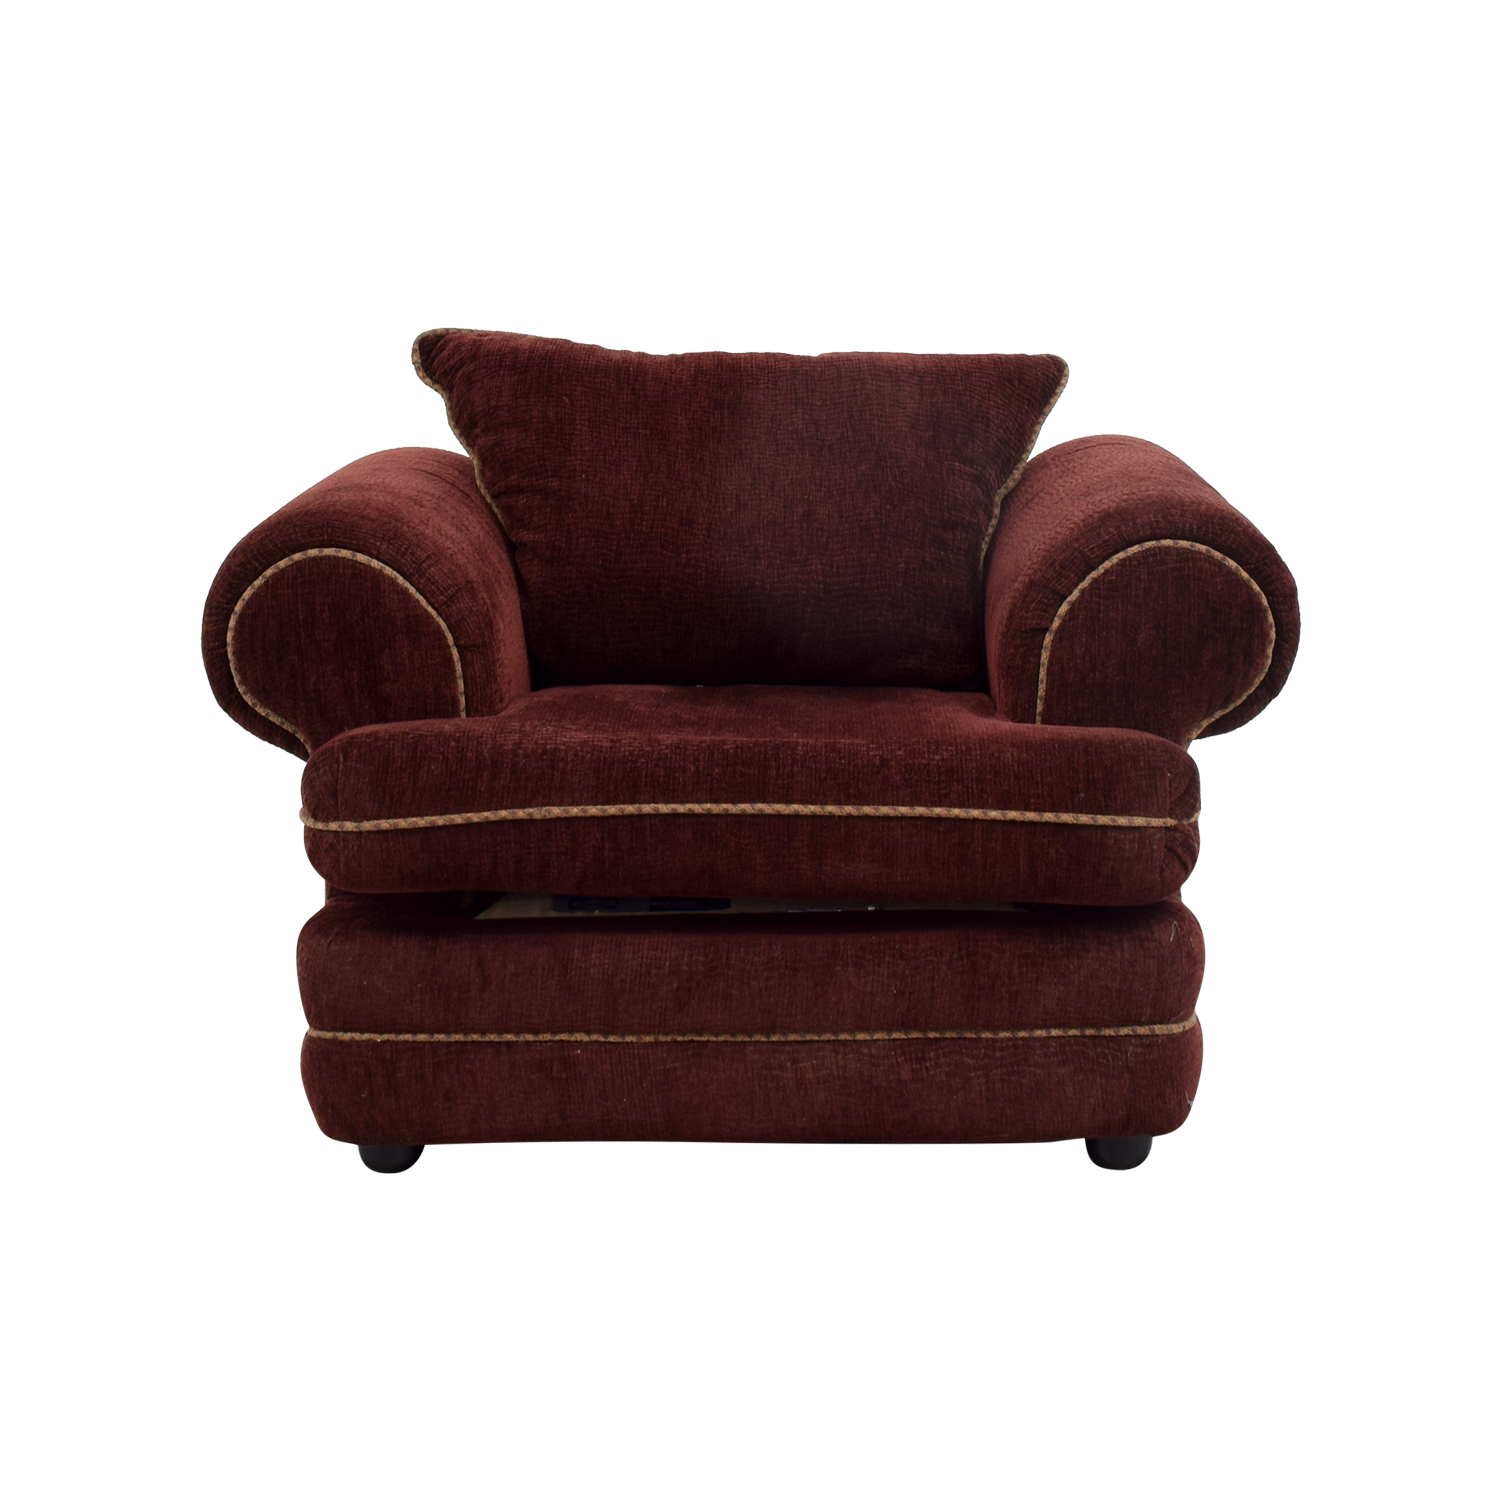 Sealy Sealy Burgundy Accent Chair